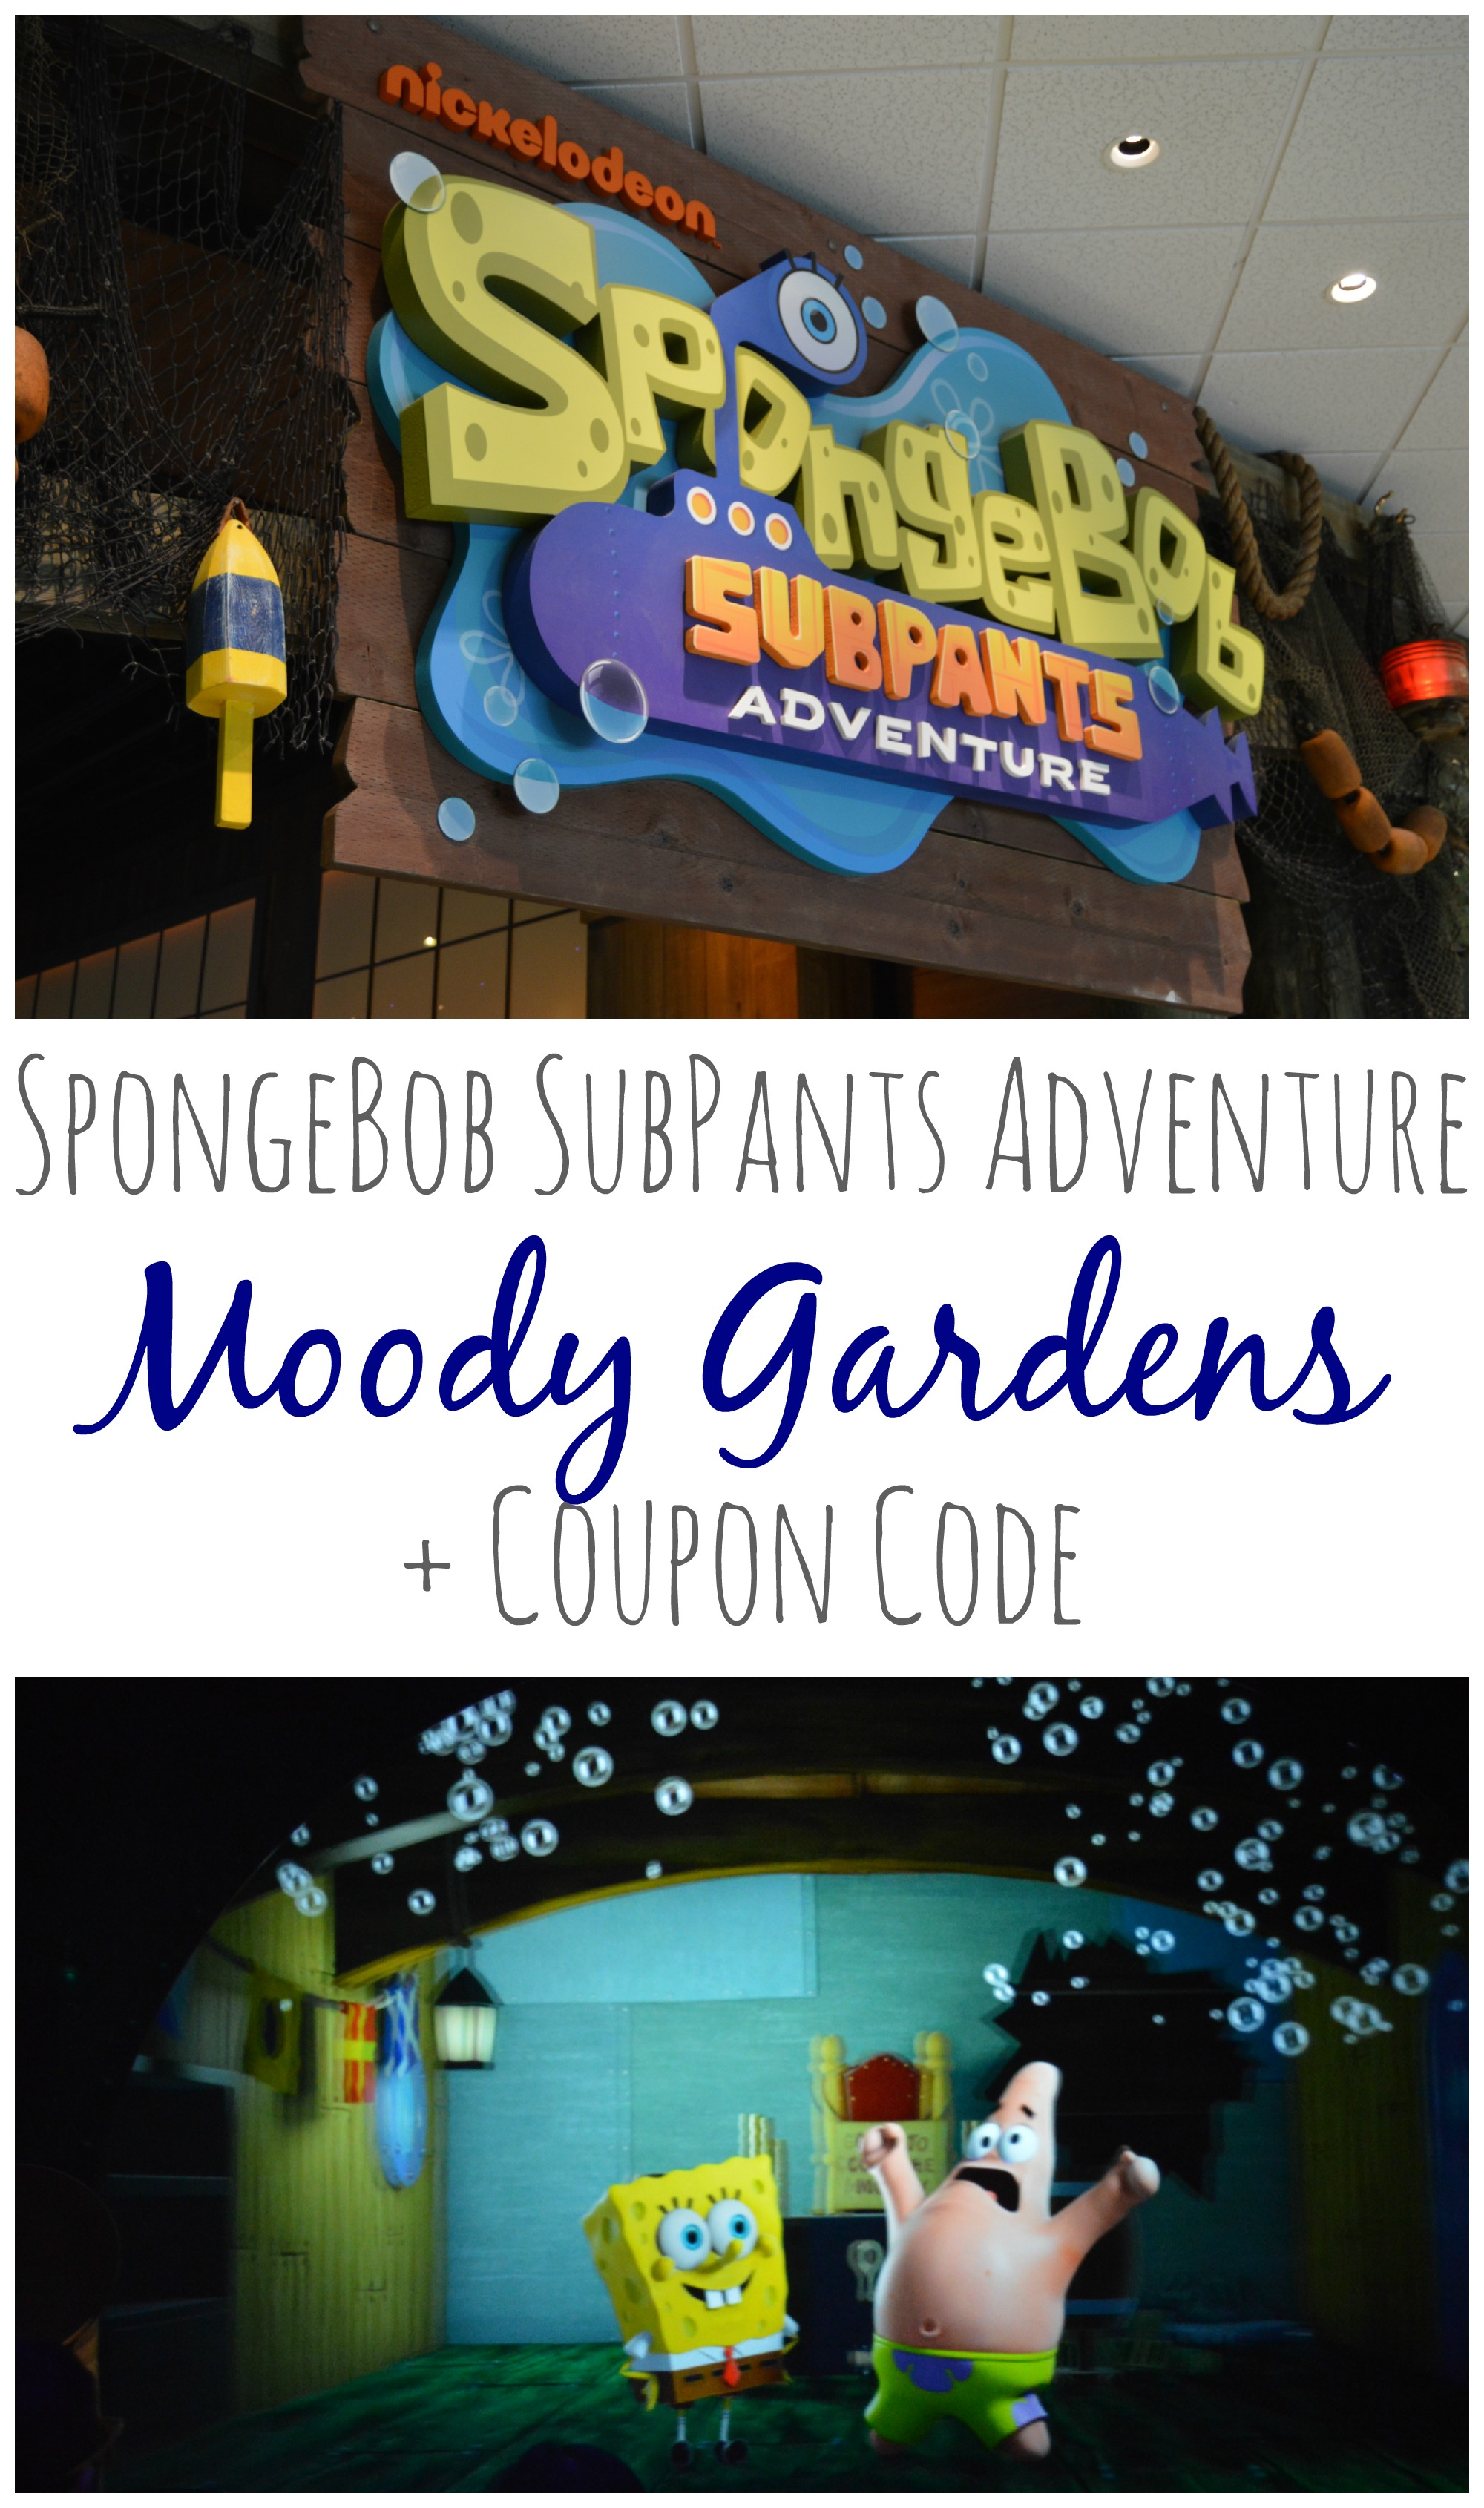 Charming Moody Gardens: SpongeBob SubPants Adventure + Coupon Code #SubPants  #ChooseYourAdventure #BestDiveEver #